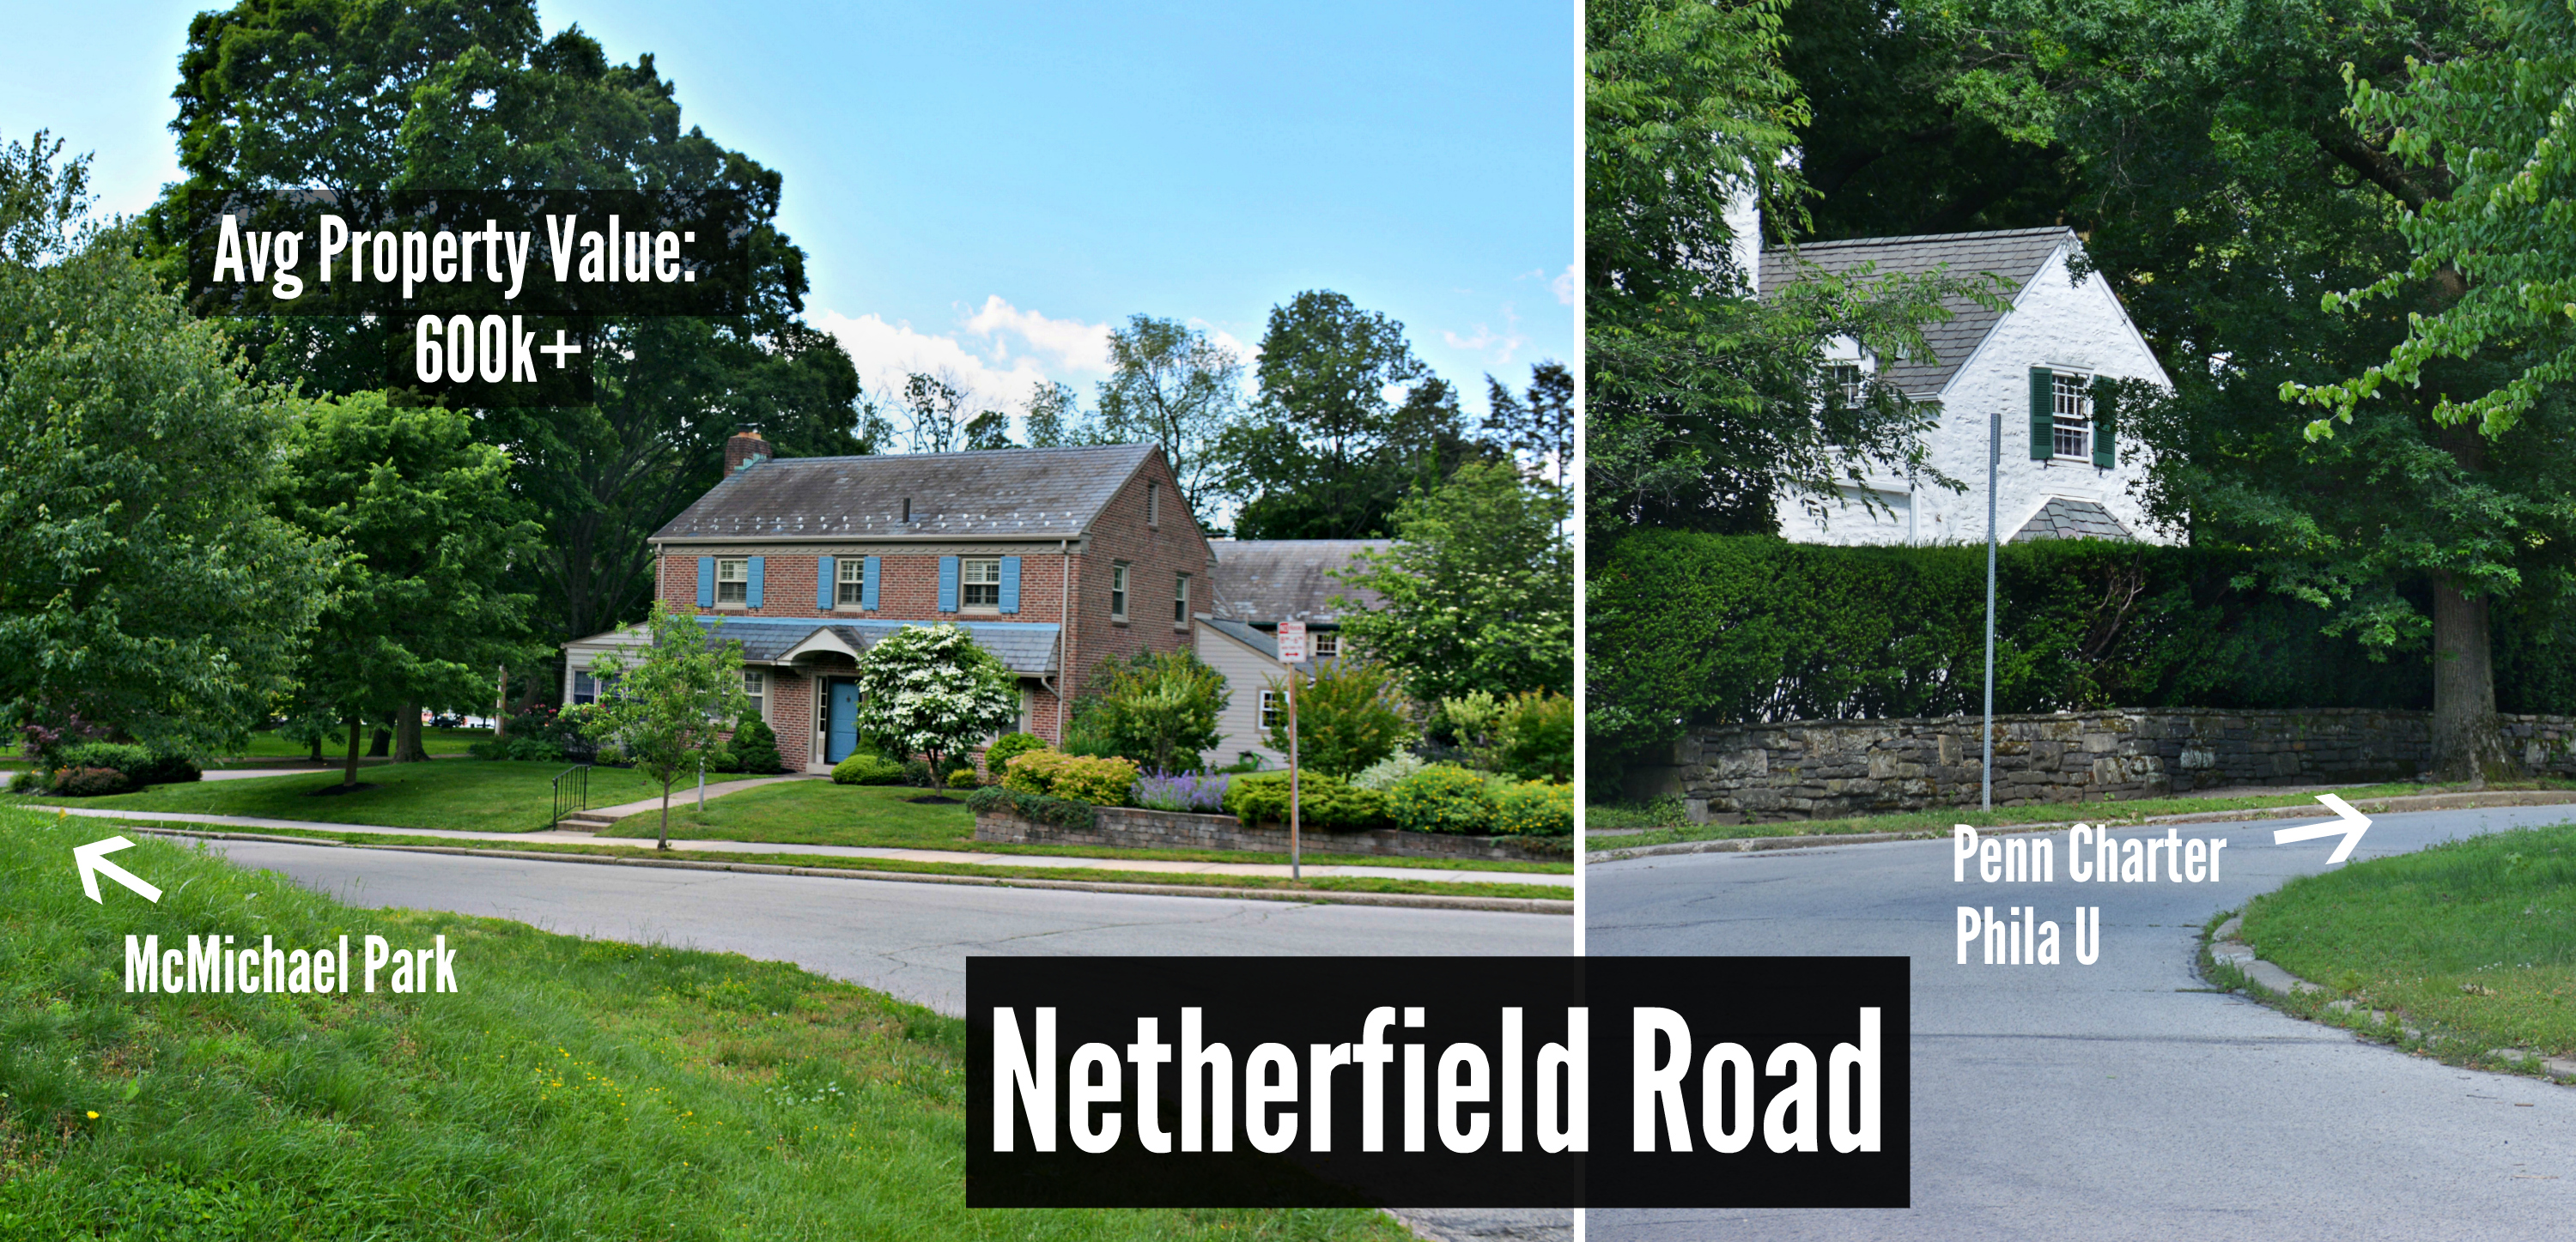 EastFallsLocal 6-12 Netherfield Scott cameron collage text road value